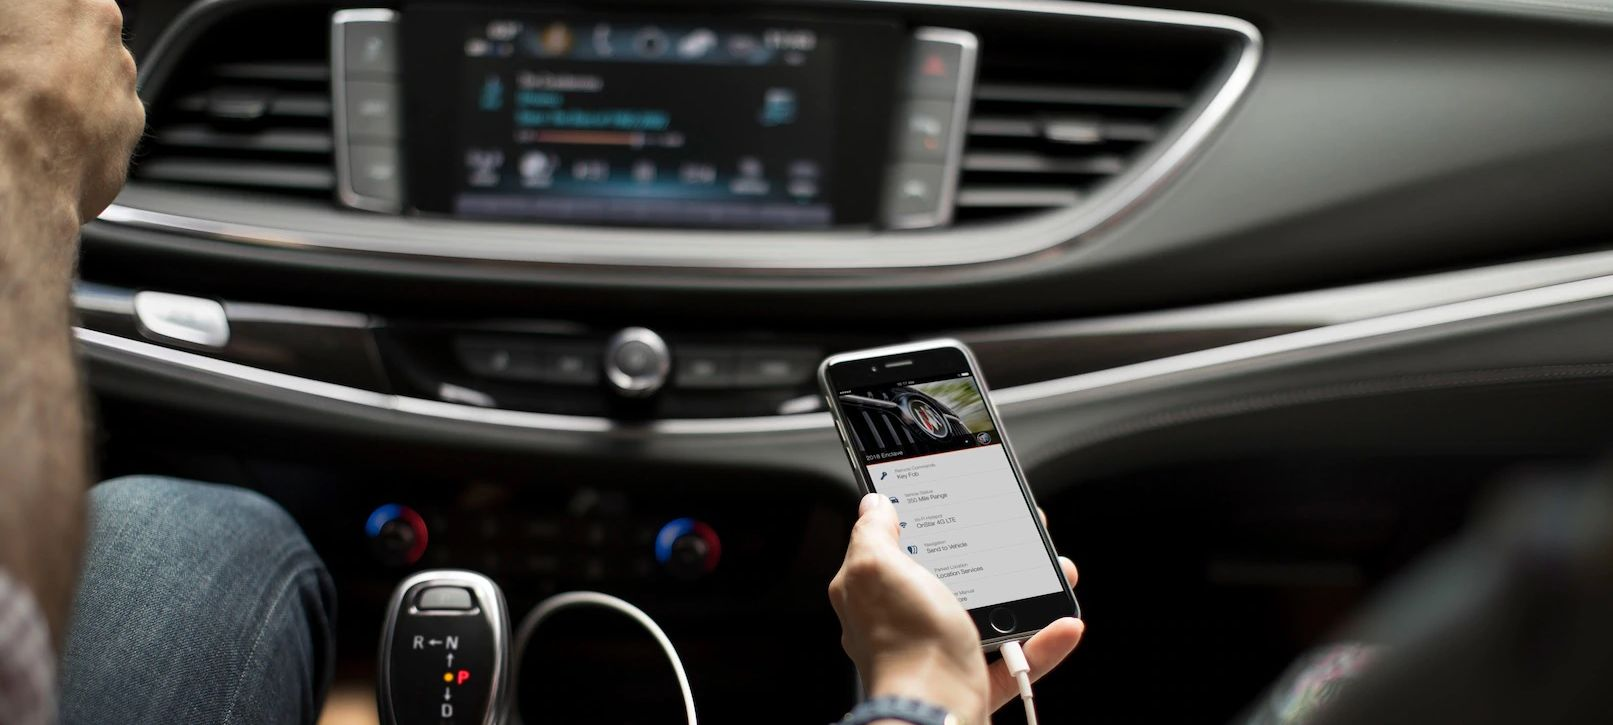 Extensive Connectivity in the 2019 Enclave